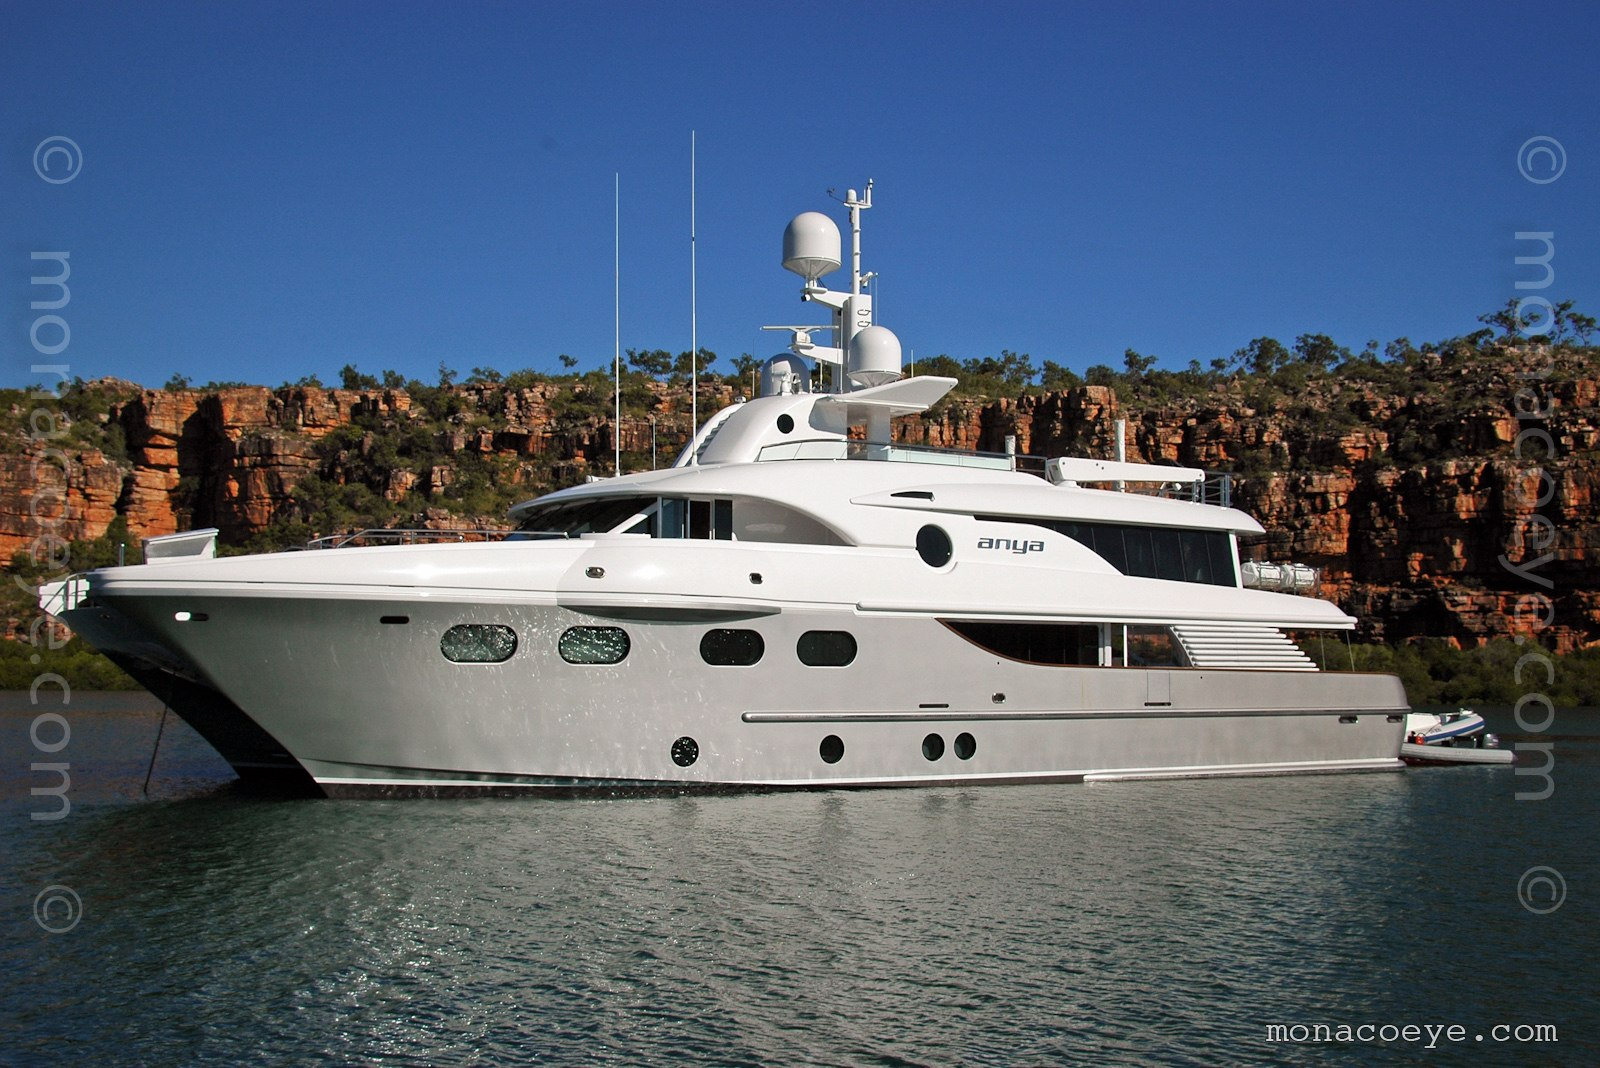 Anya yacht. Built by Evolution Yachts, 2009, 35 metre catamaran